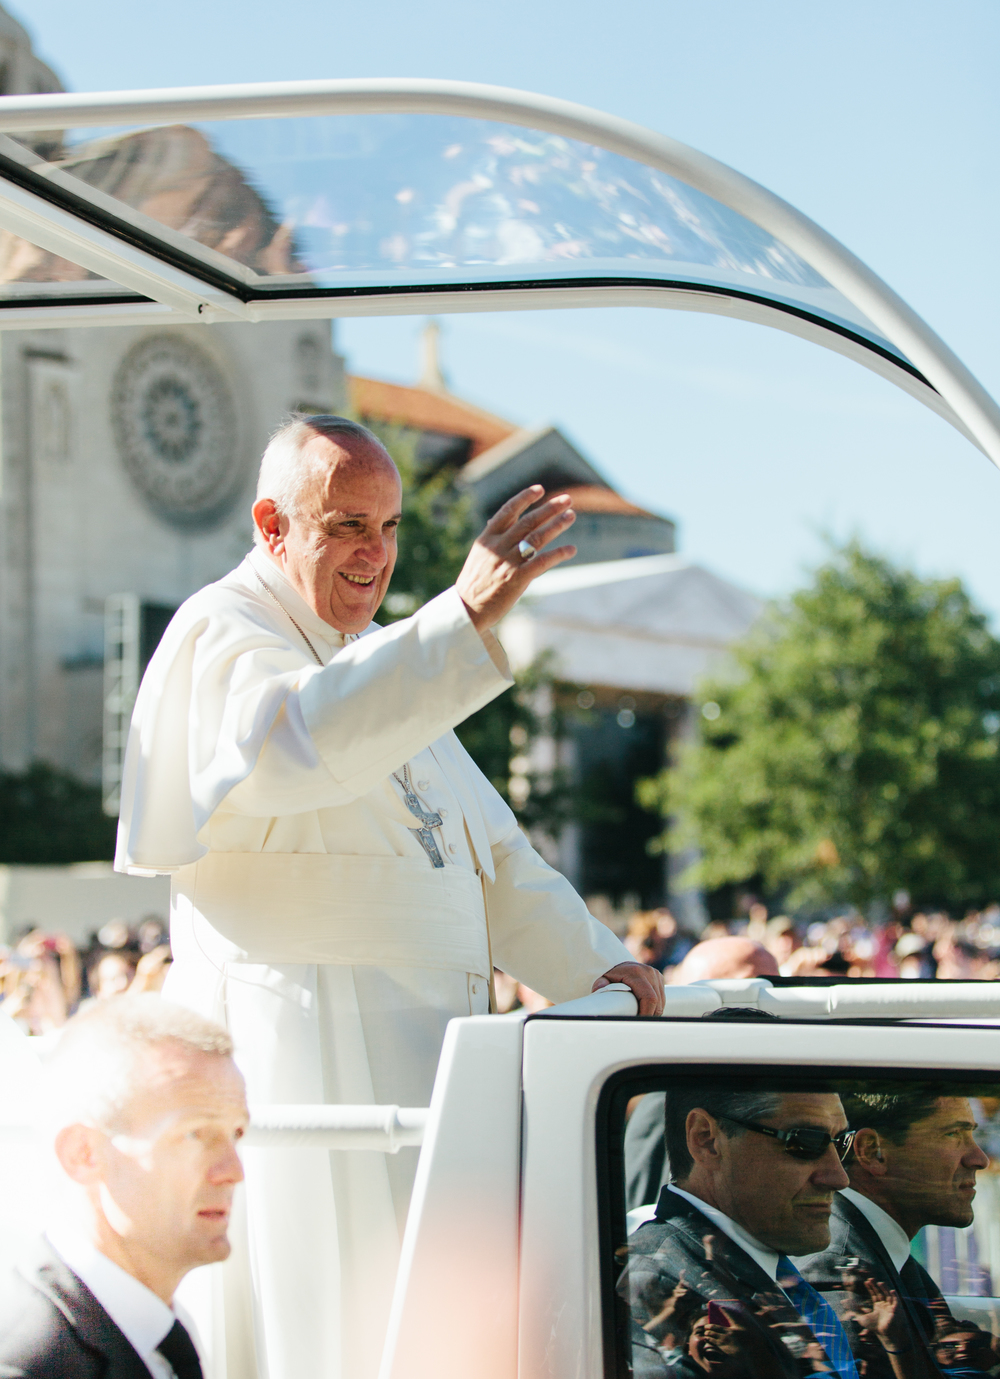 Pope Francis in his vehicle with Secret Service